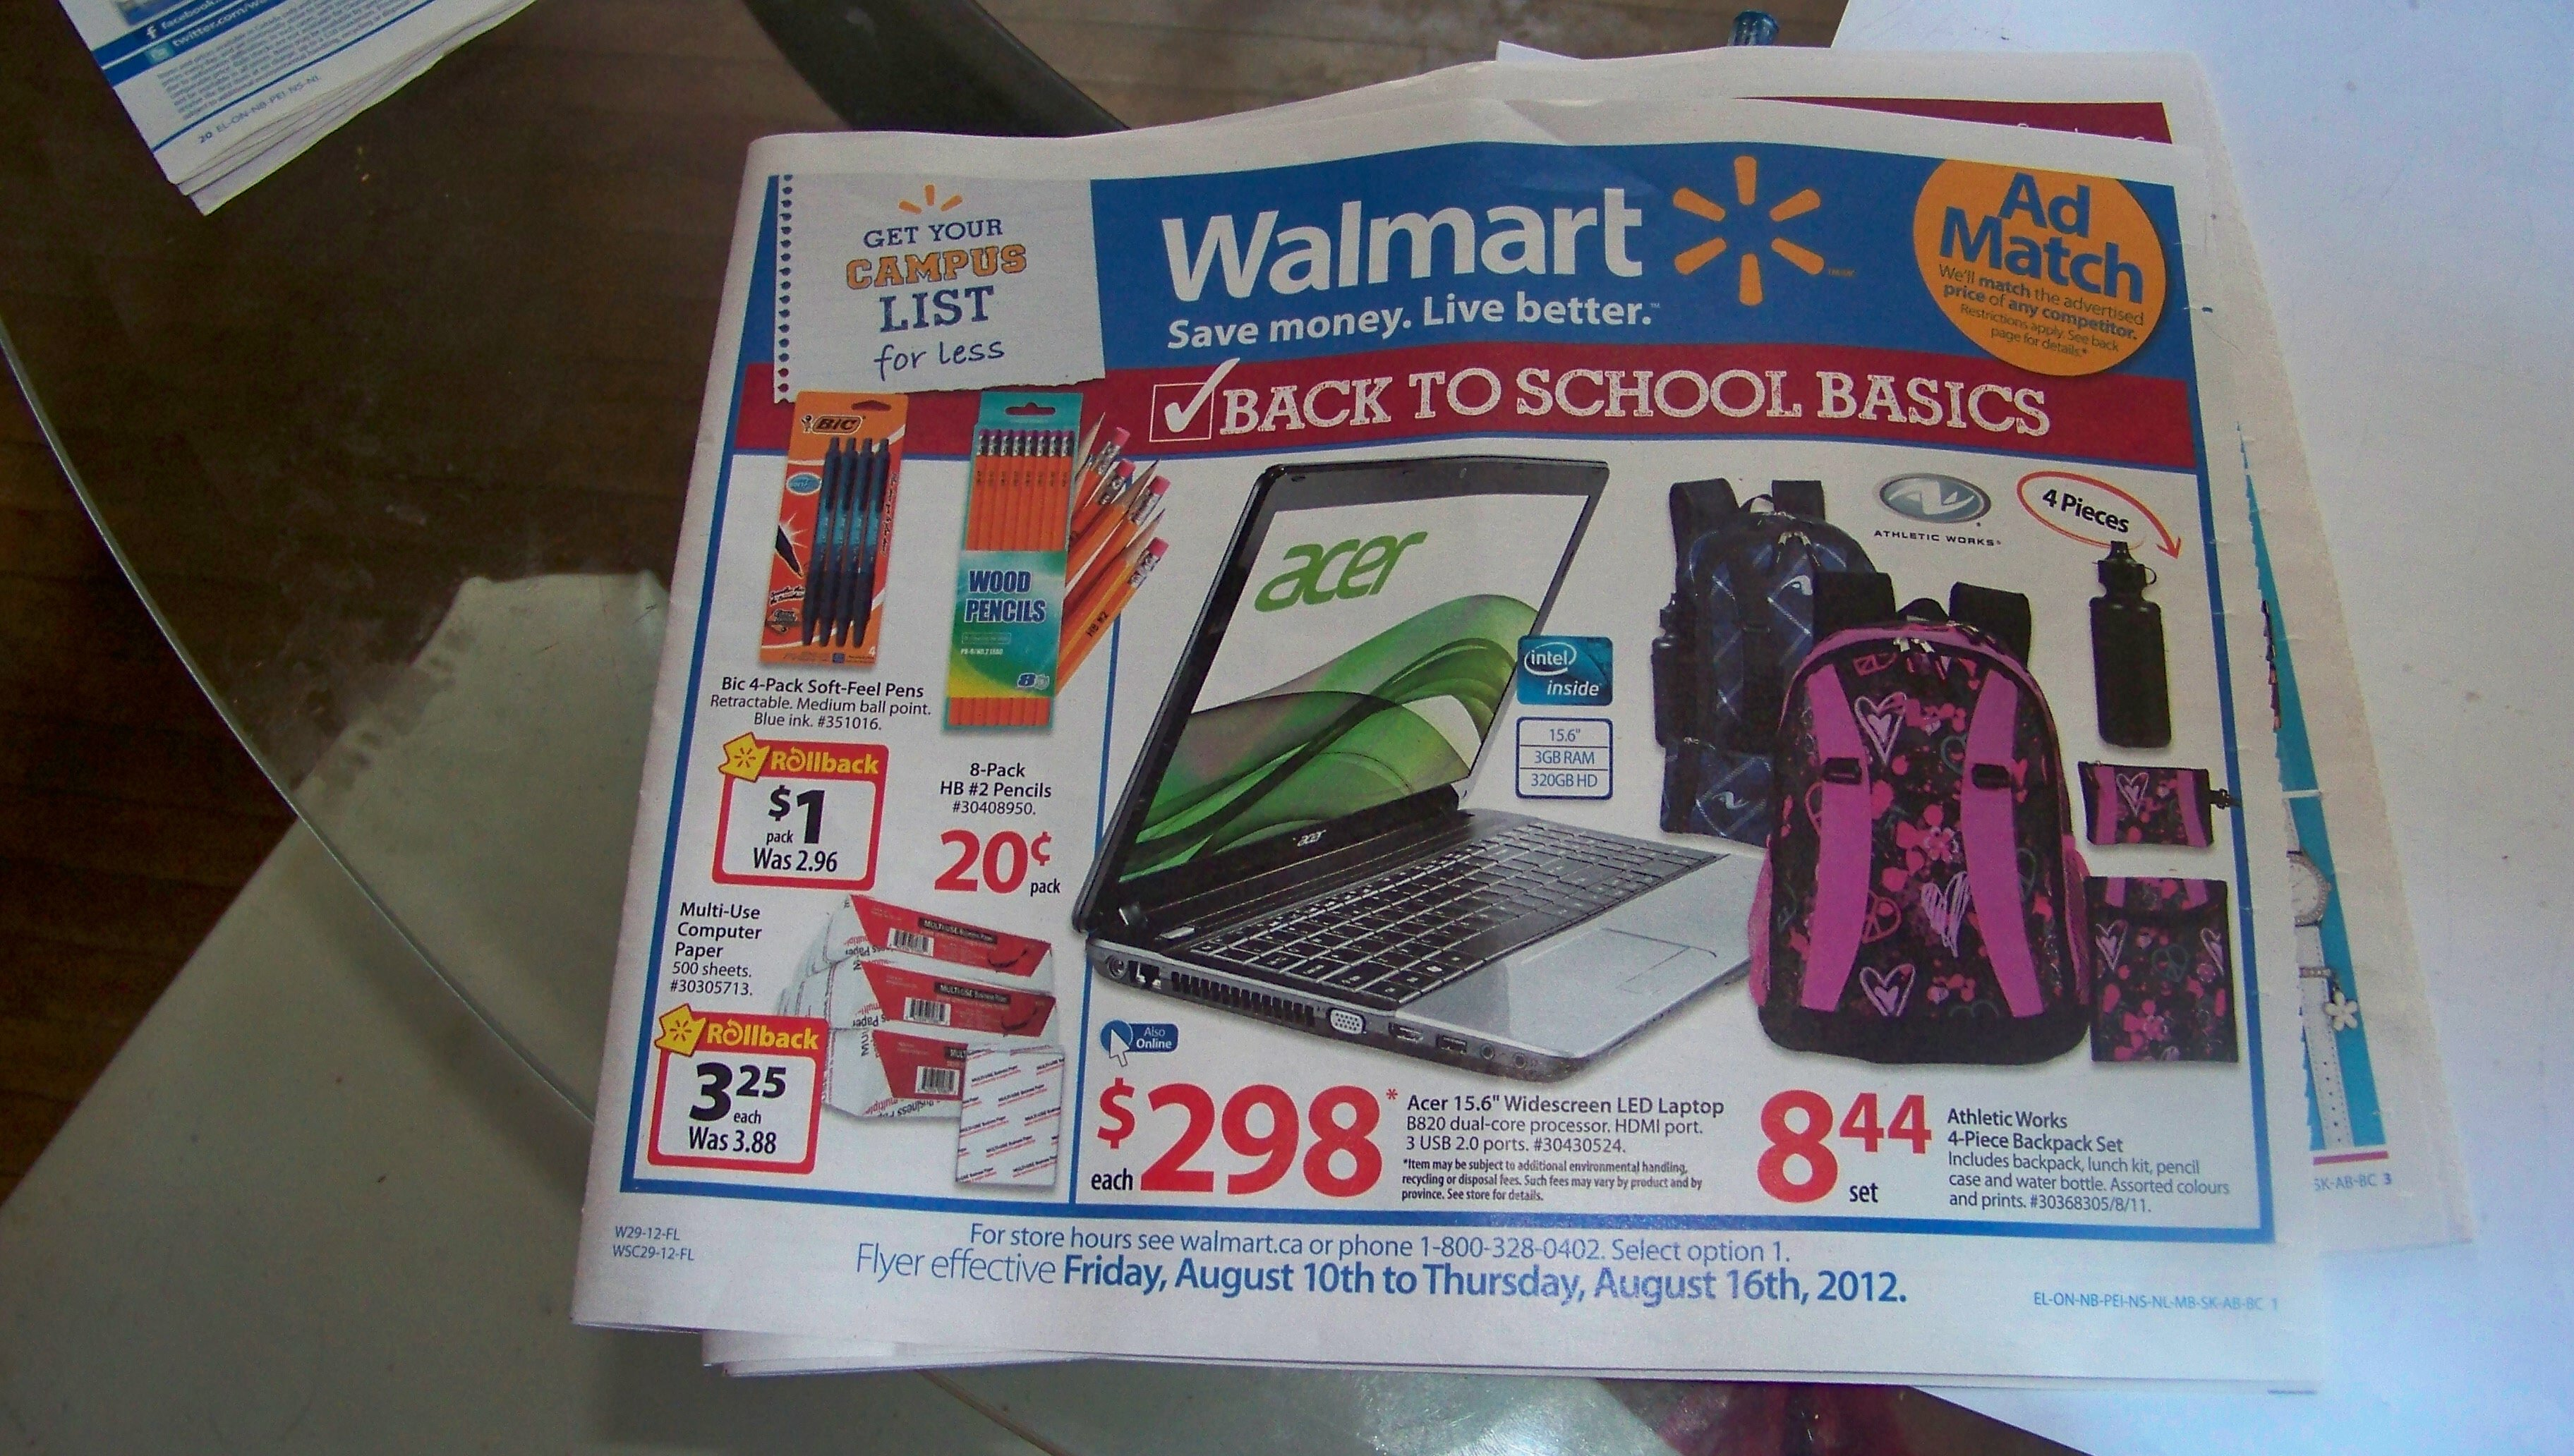 Walmart Sneak Peek Aug 10-Aug 16 2012